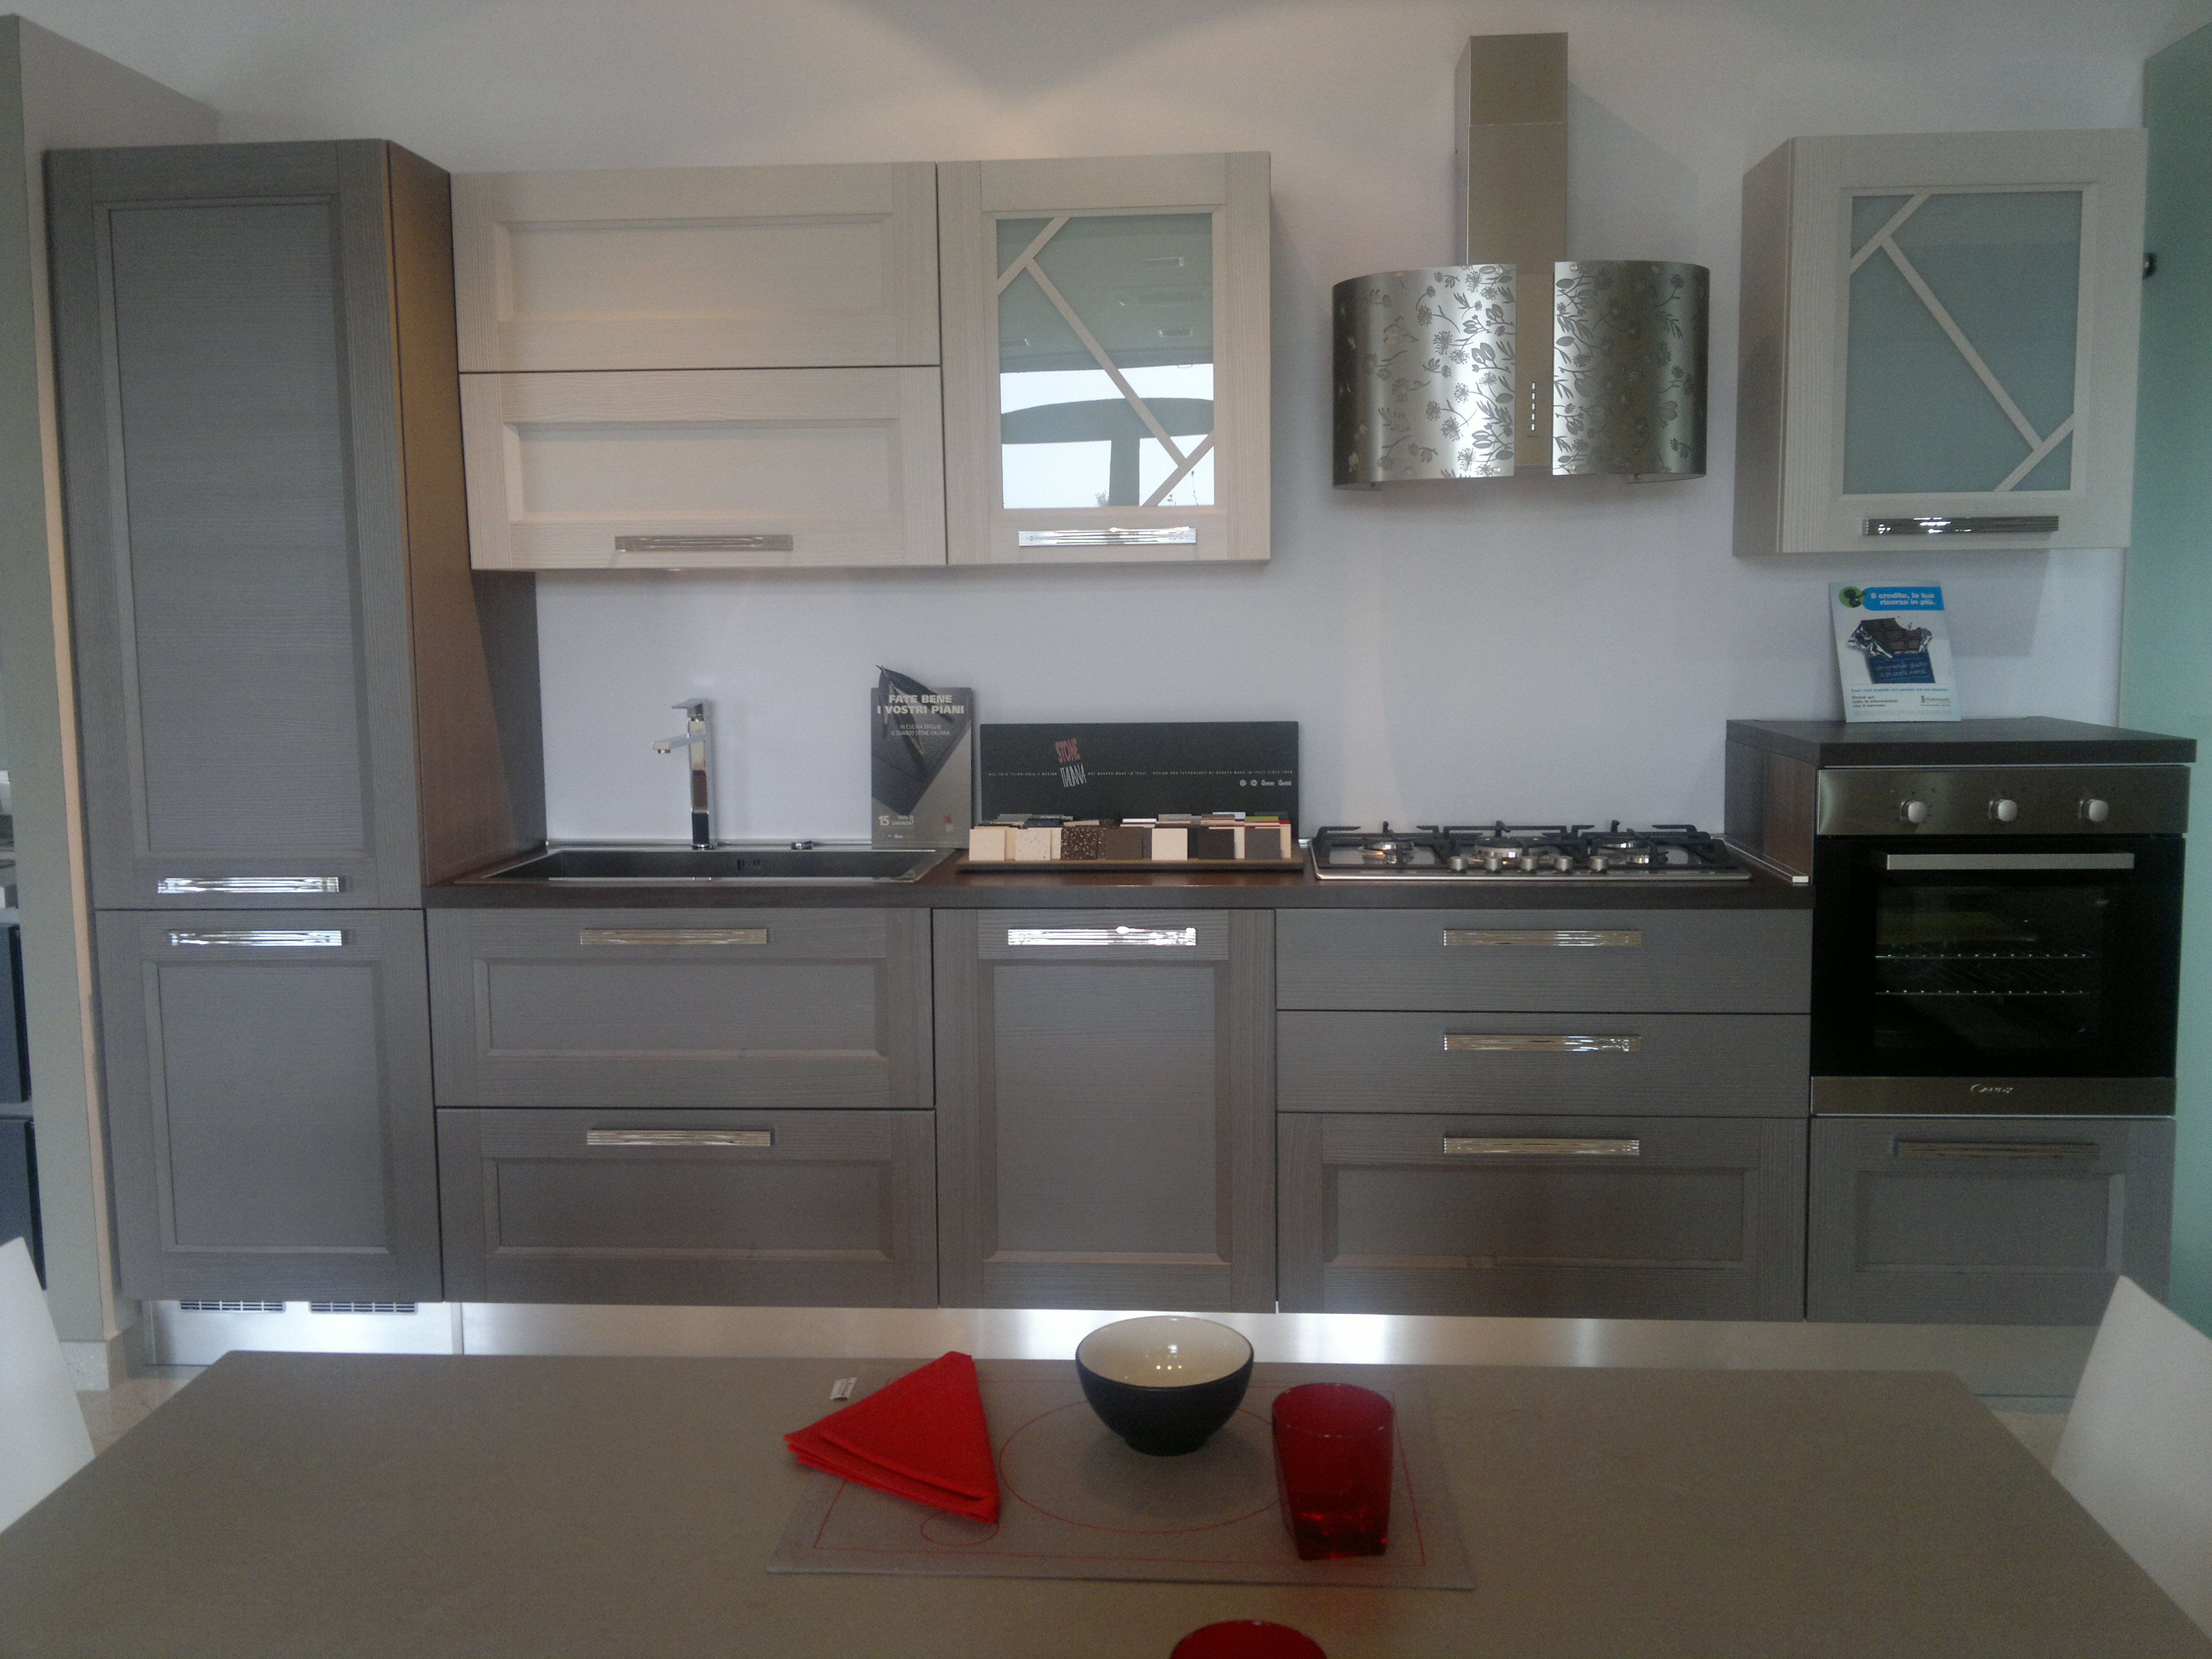 Cucine Lube Parma: Noemi lube cucine pictures to pin on. Cucine ...